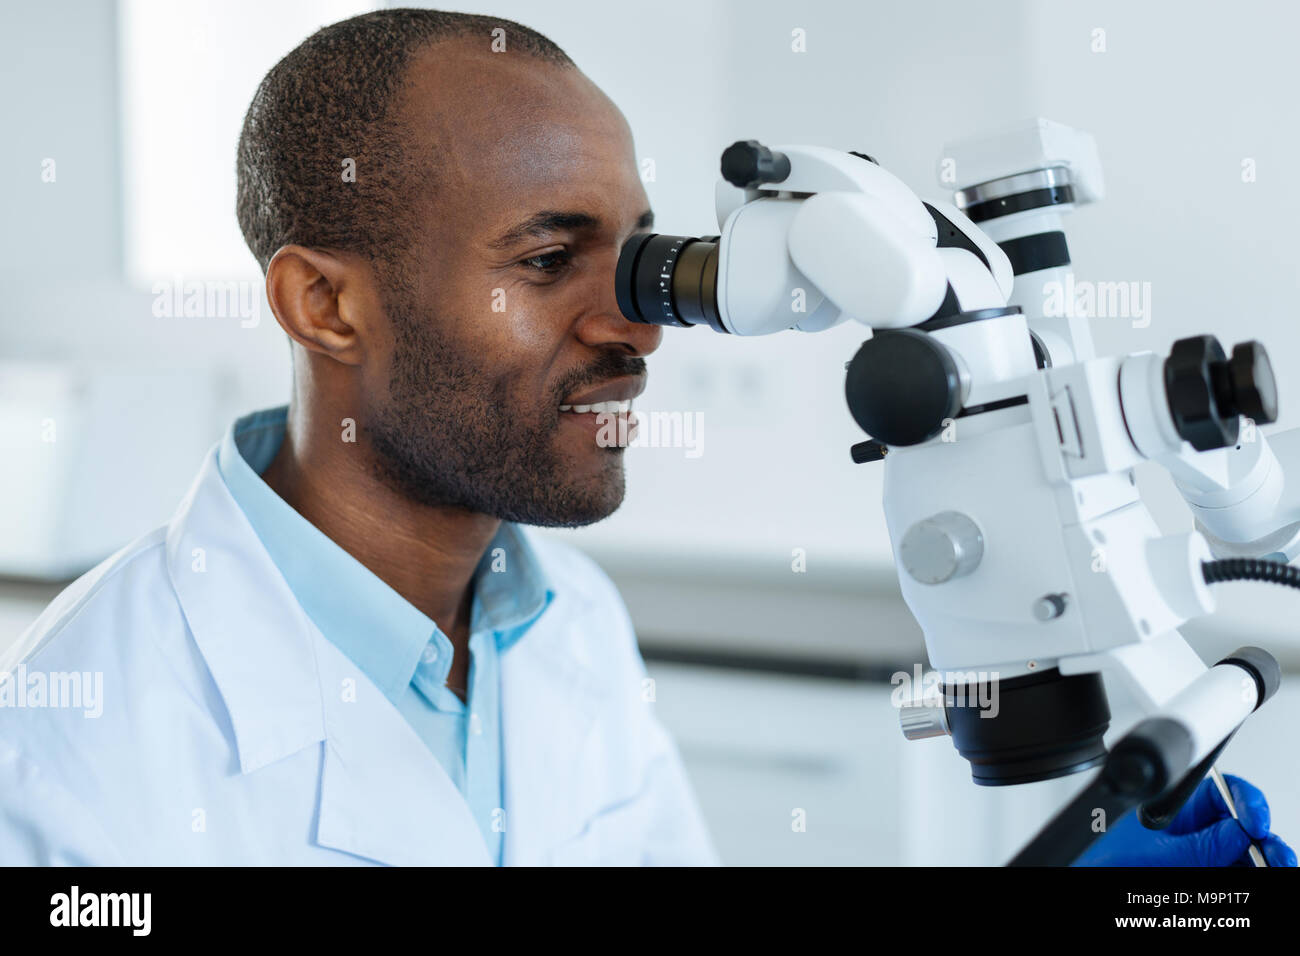 Upbeat man studying oral cavity with help of microscope - Stock Image